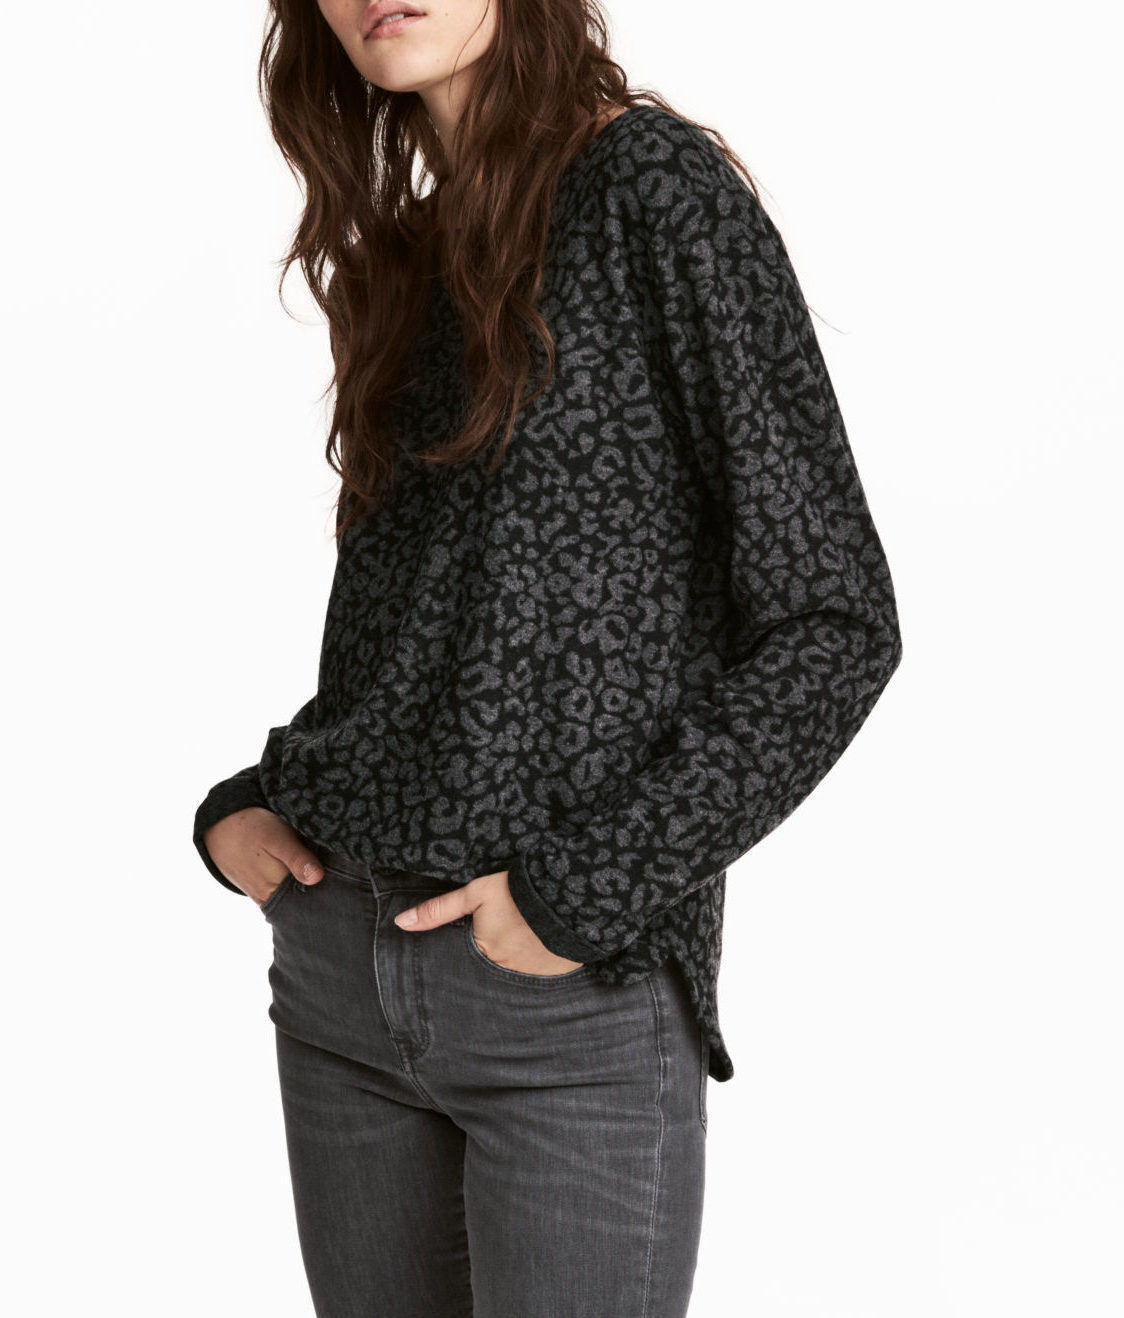 h&m leopard top